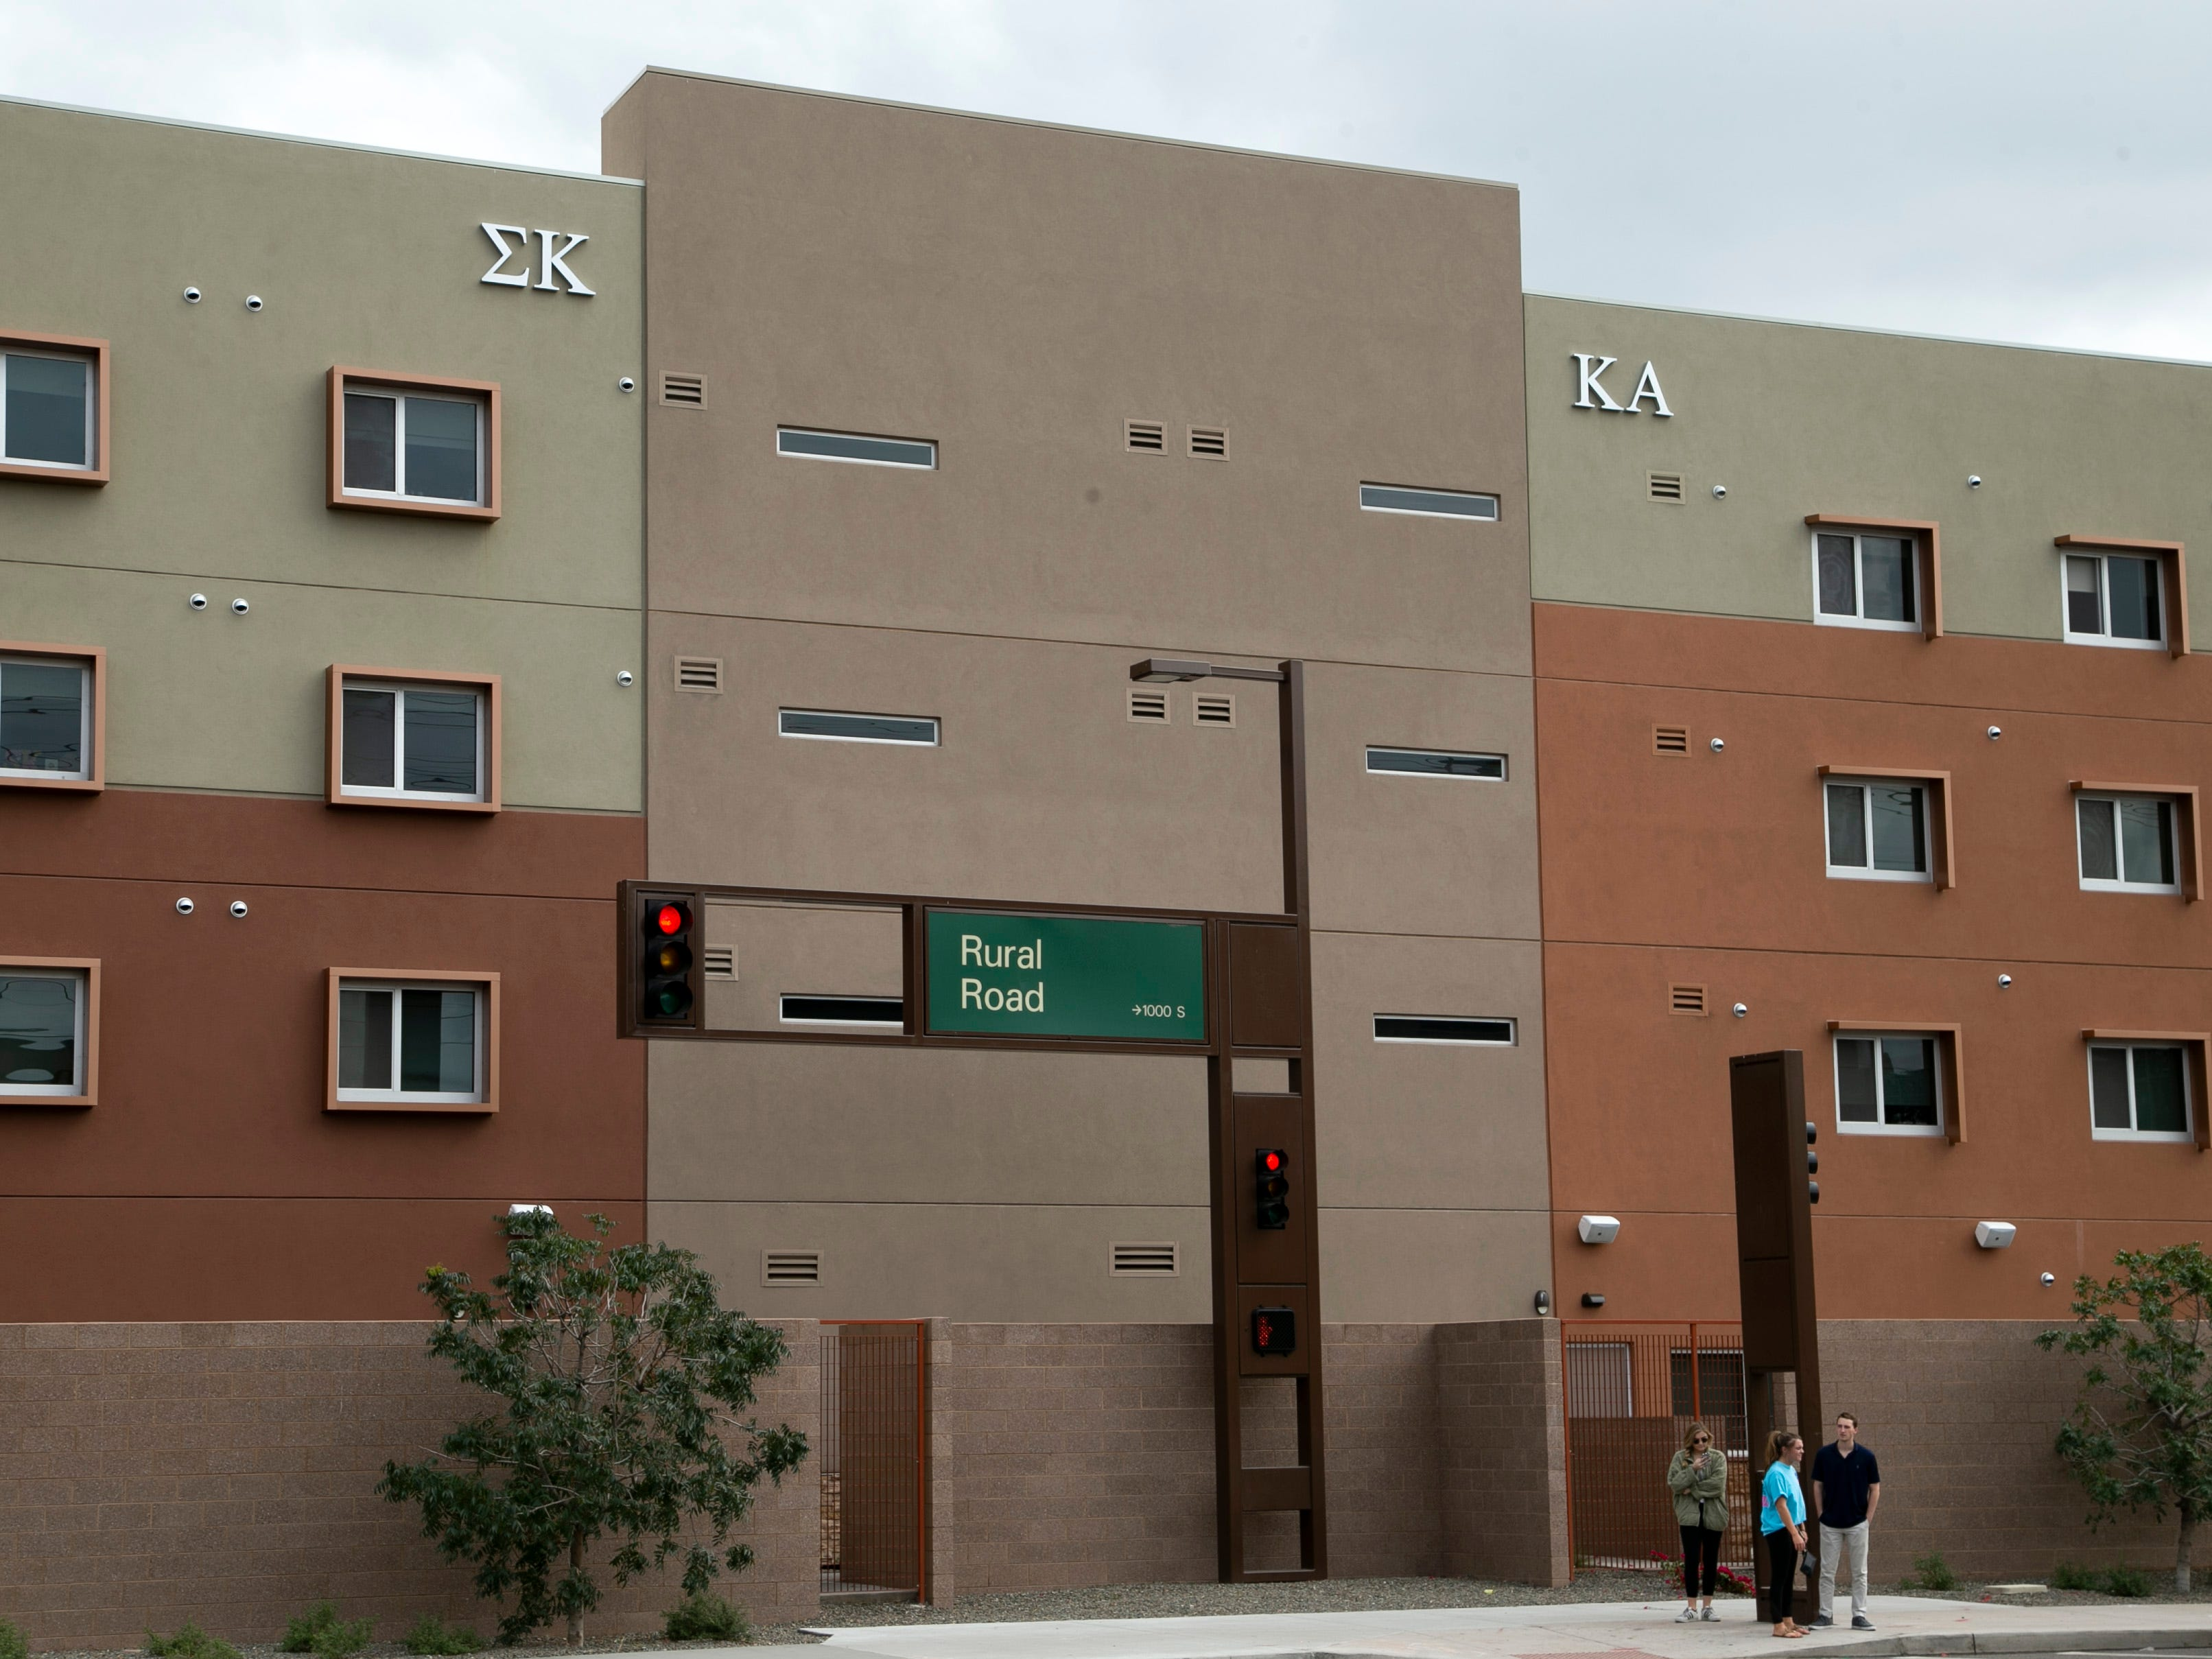 The Greek Leadership Village, provides townhouse-style housing for fraternity and sorority life on ASU's main campus in Tempe as seen on Feb. 15, 2019. It opened in 2018.